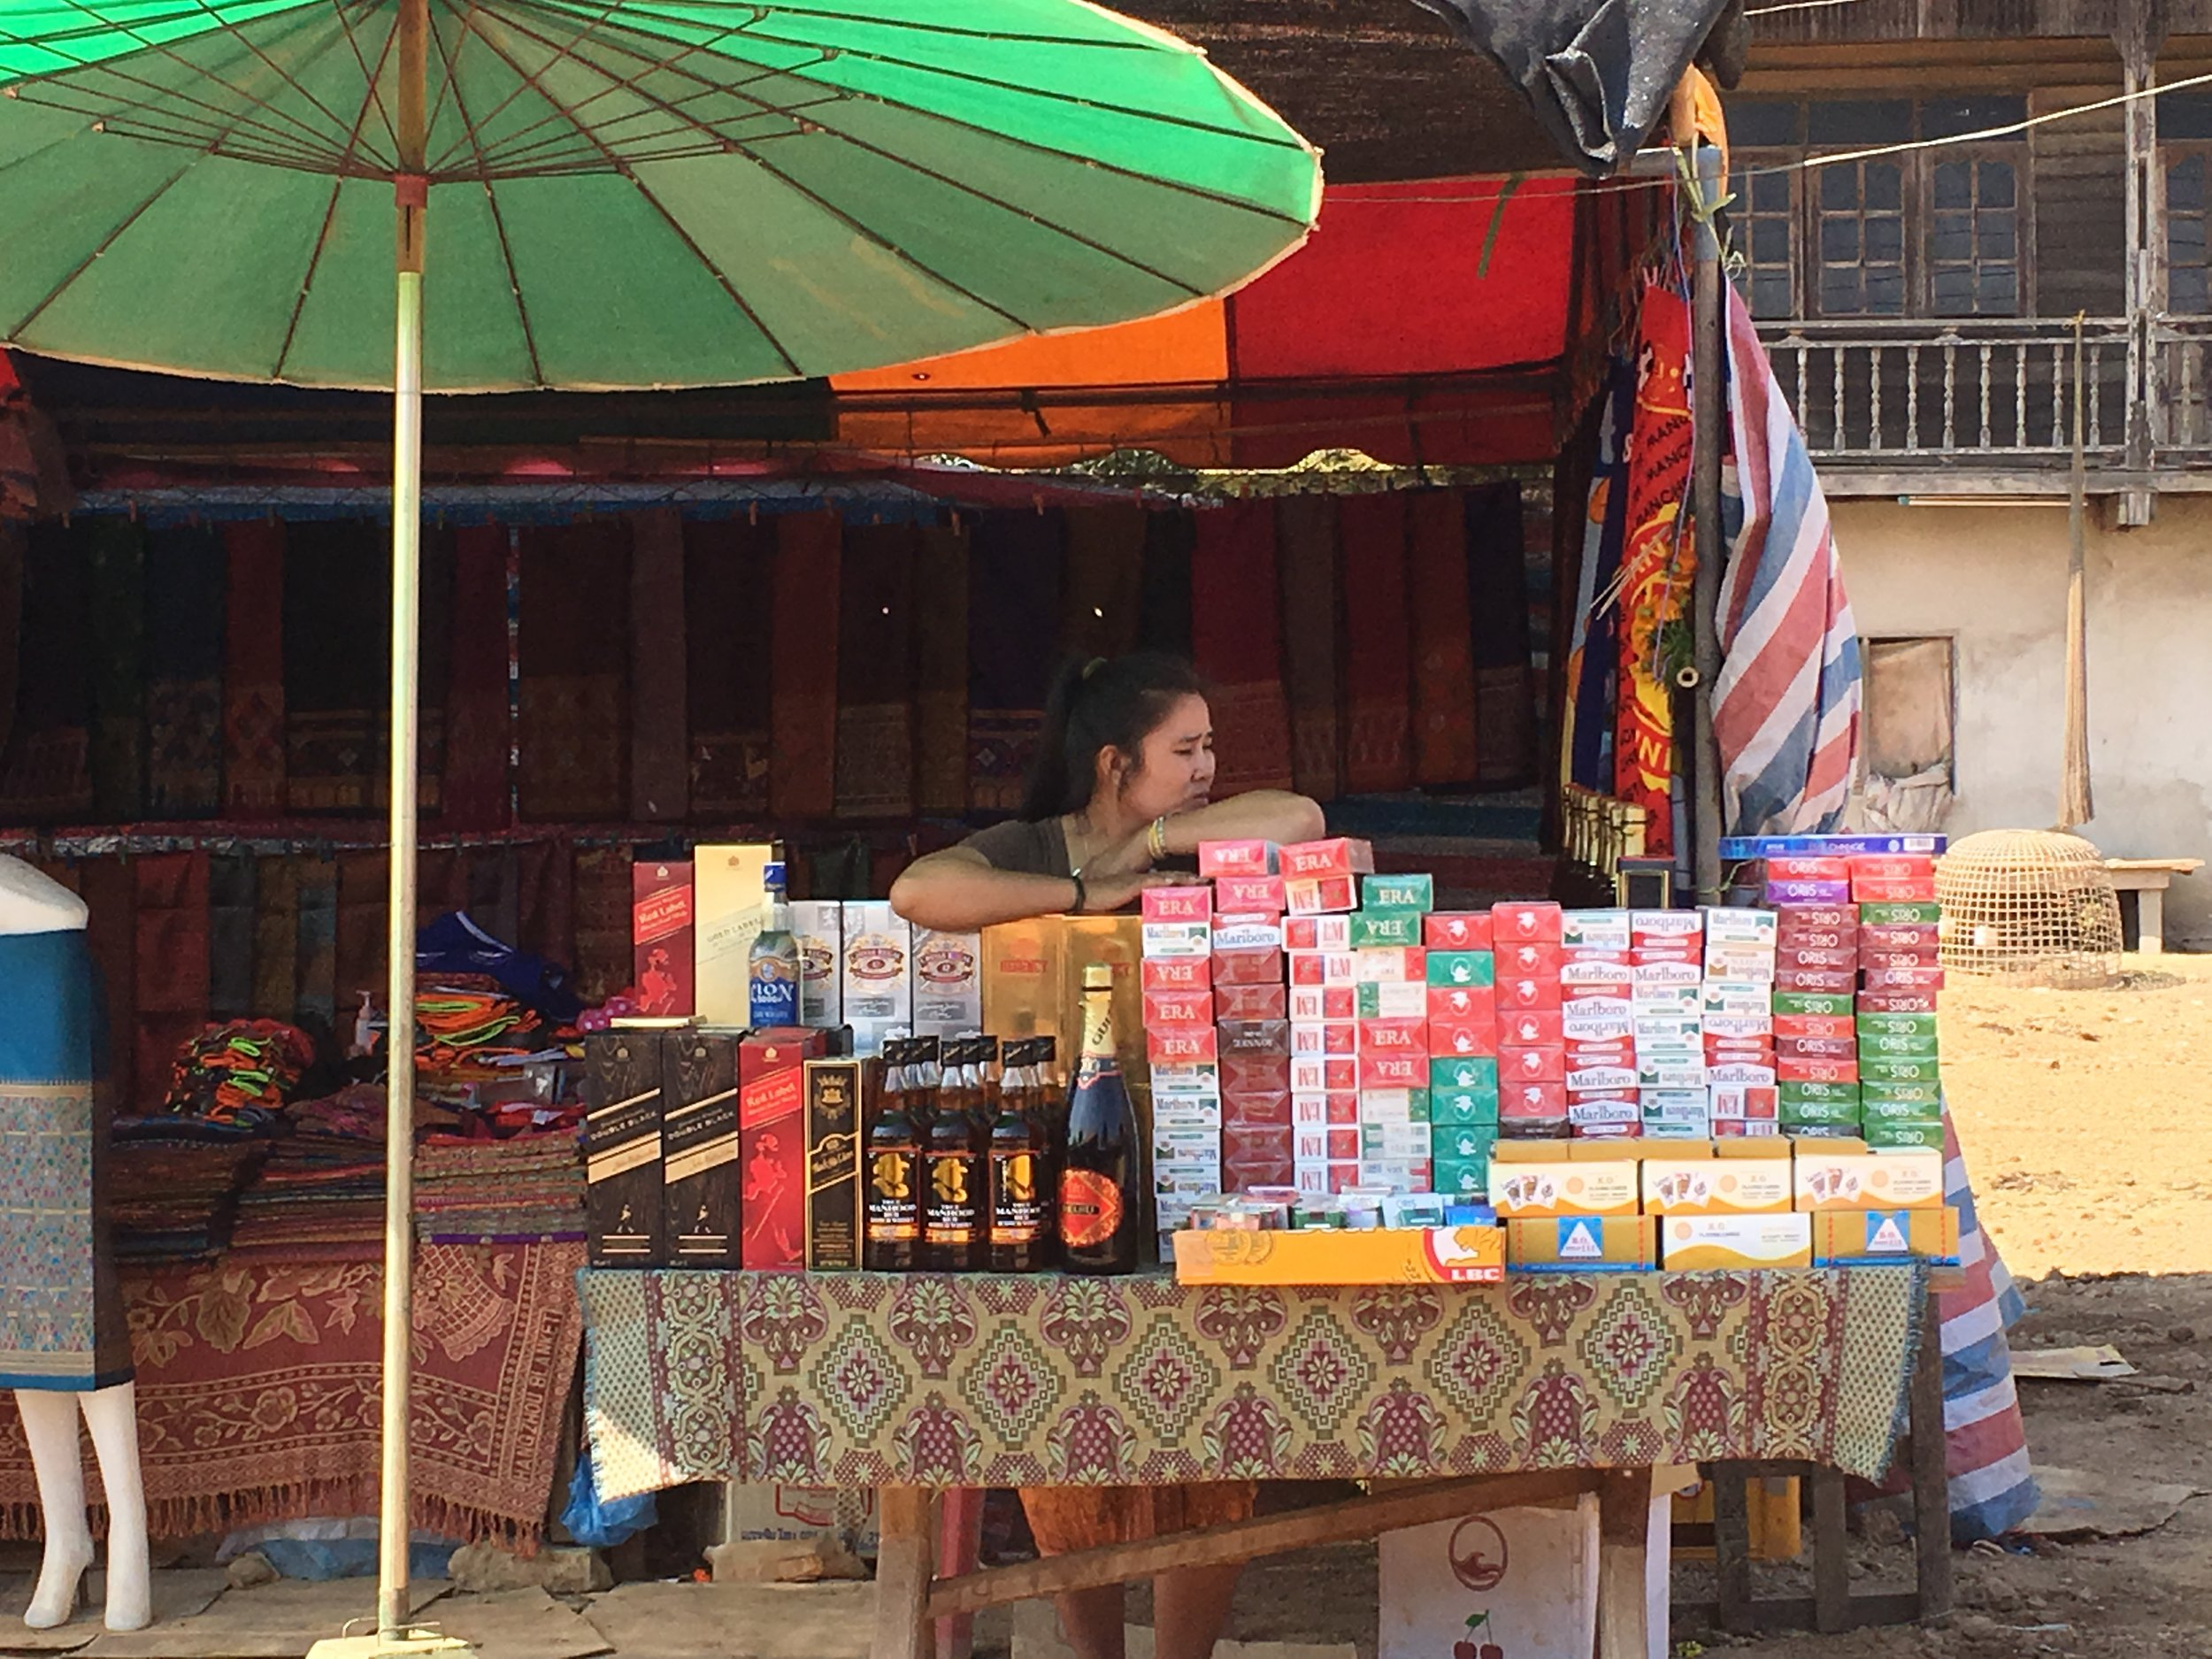 A woman selling liquor and cigarettes in Laos